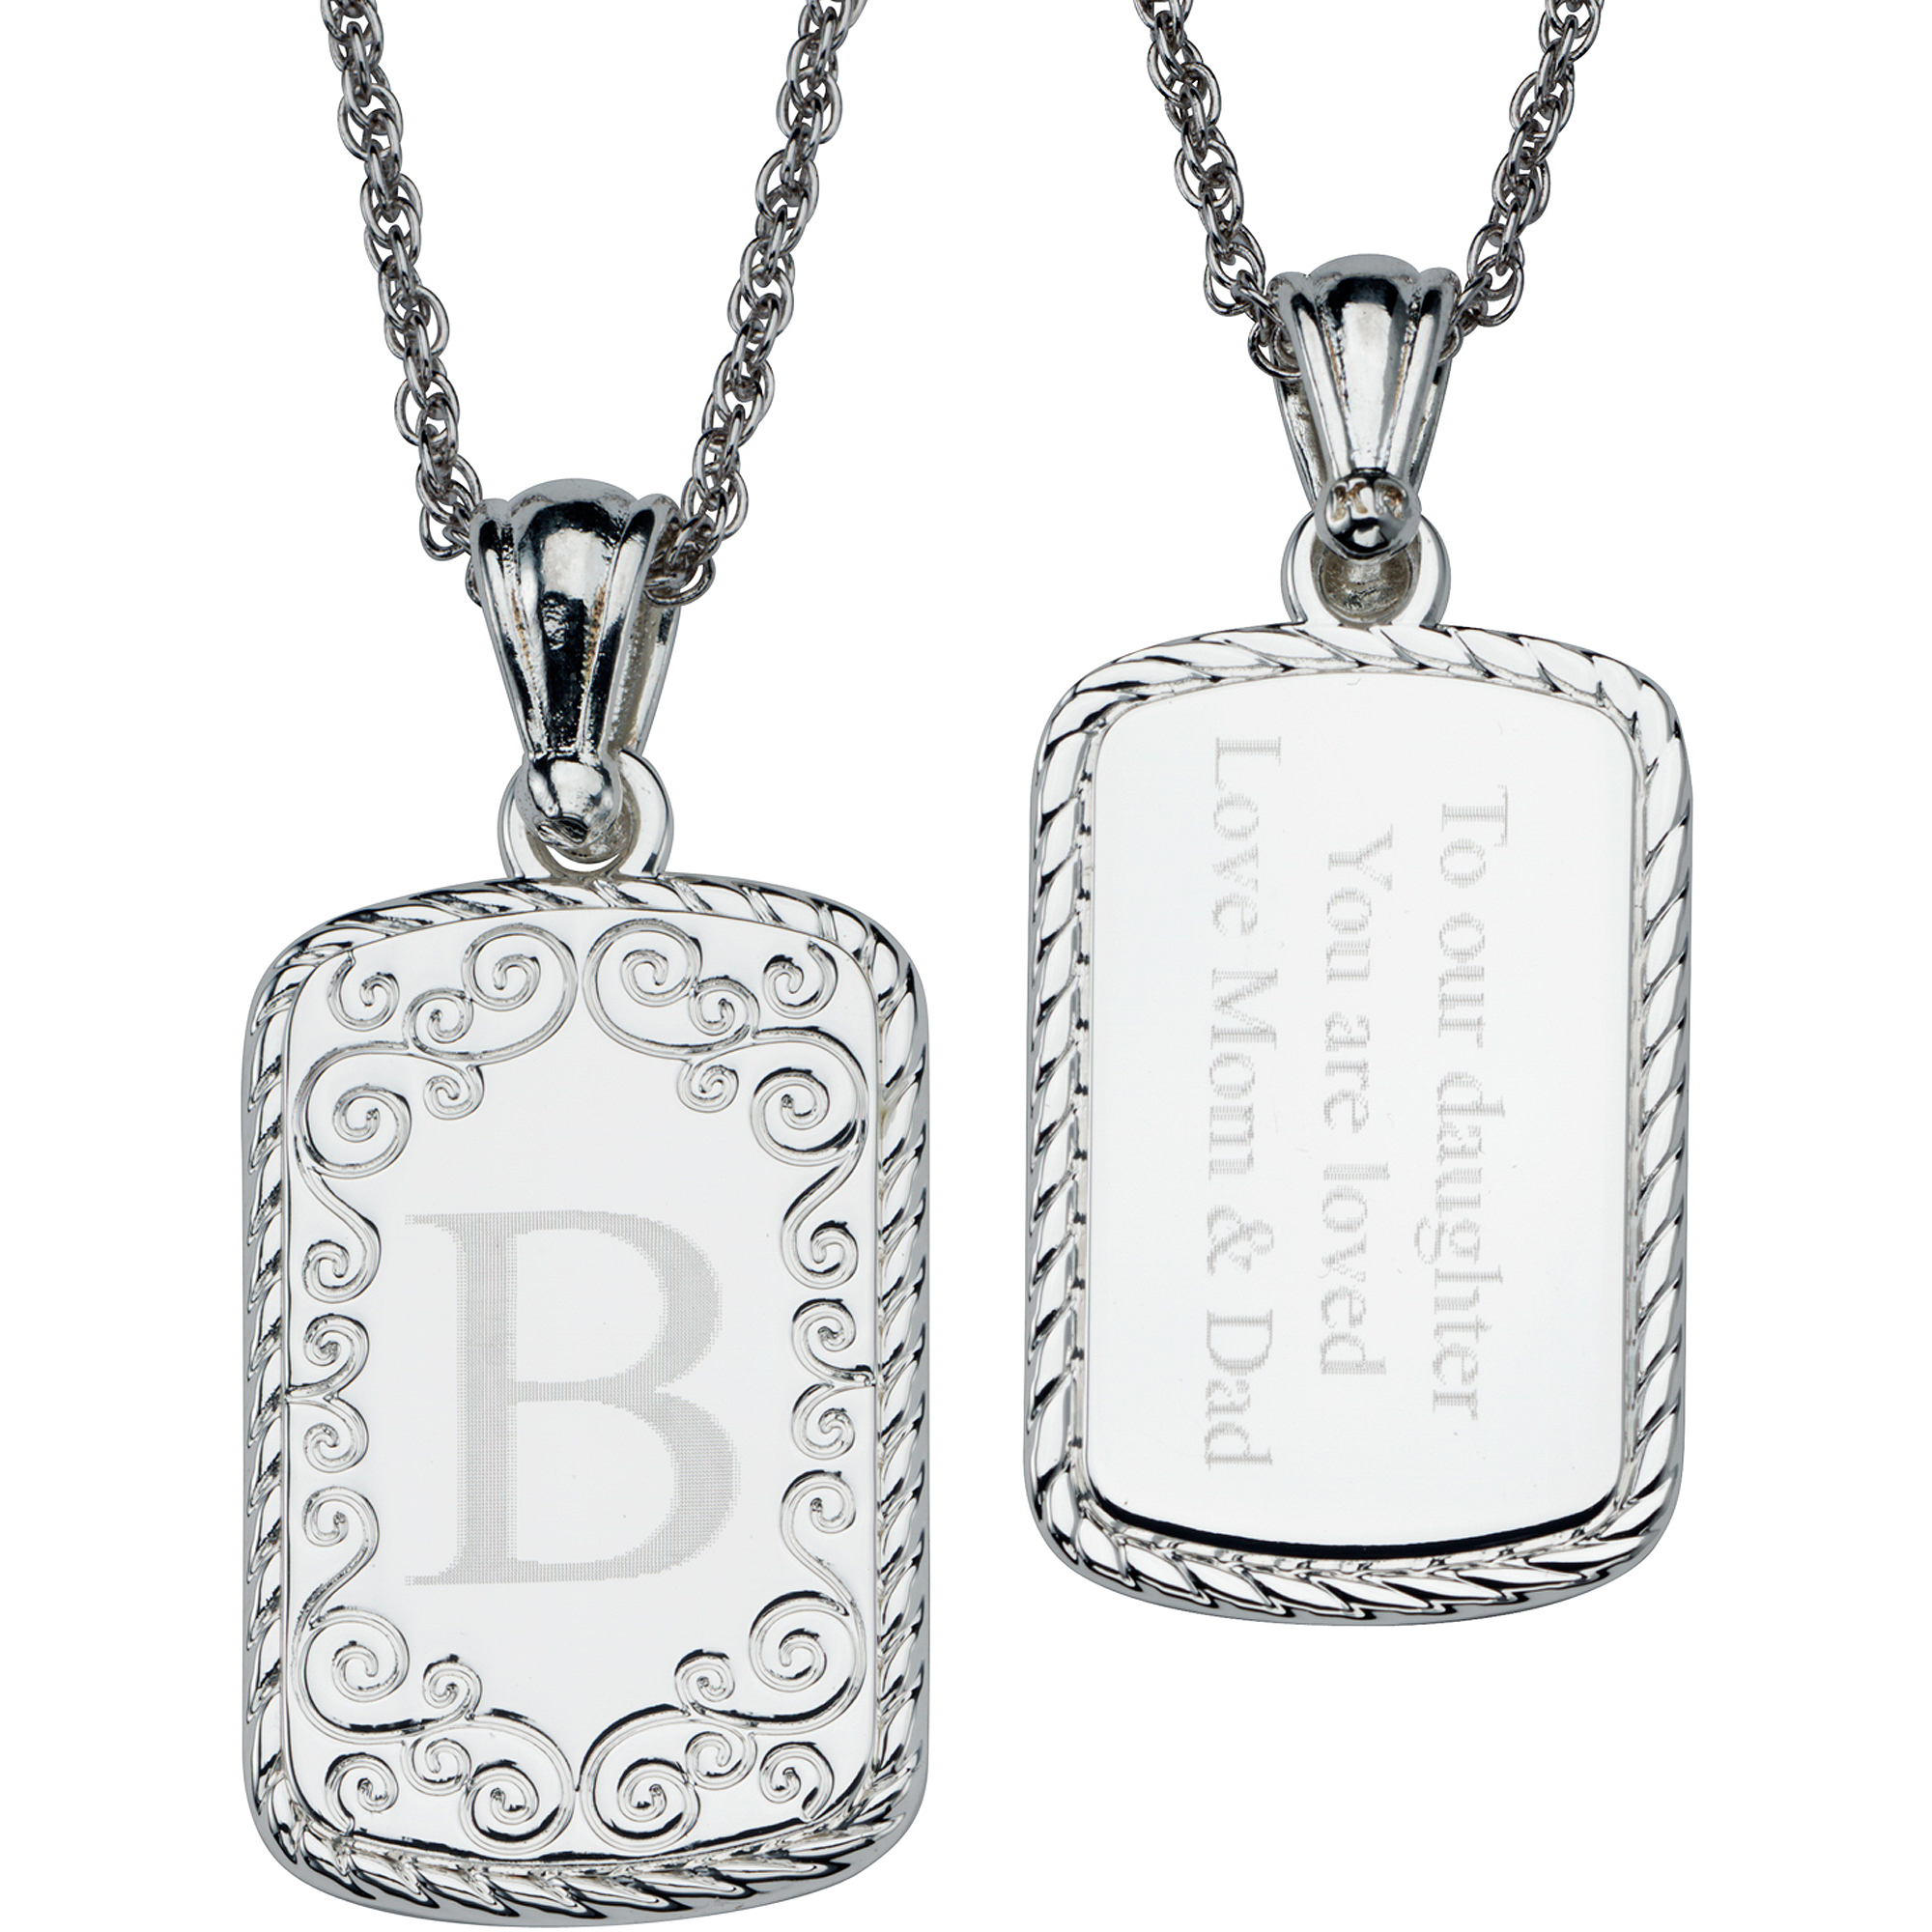 Personalized Women's Silver-Plated Engraved Initial and Message Filigree Rectangle Pendant